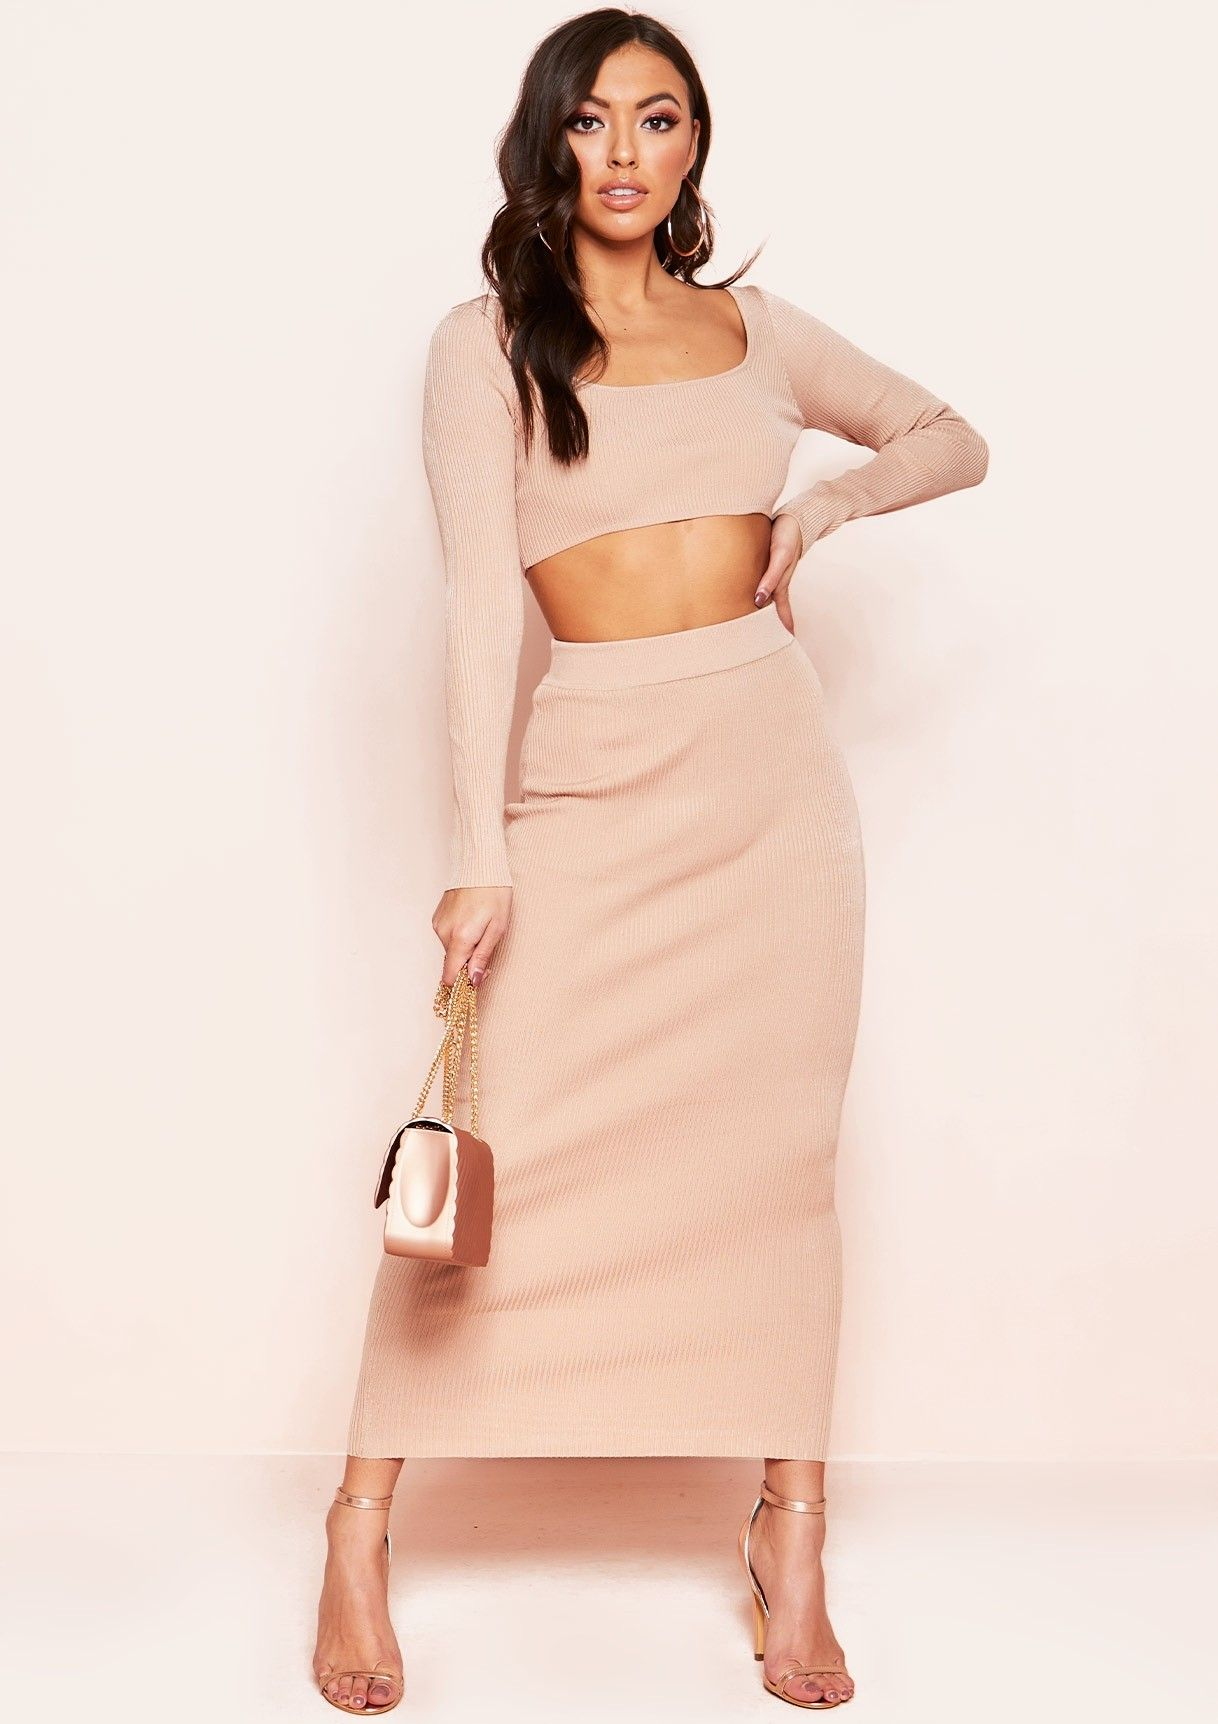 Missyempire - Cami Nude Knit Ribbed Co-ord Set a033a4c3a